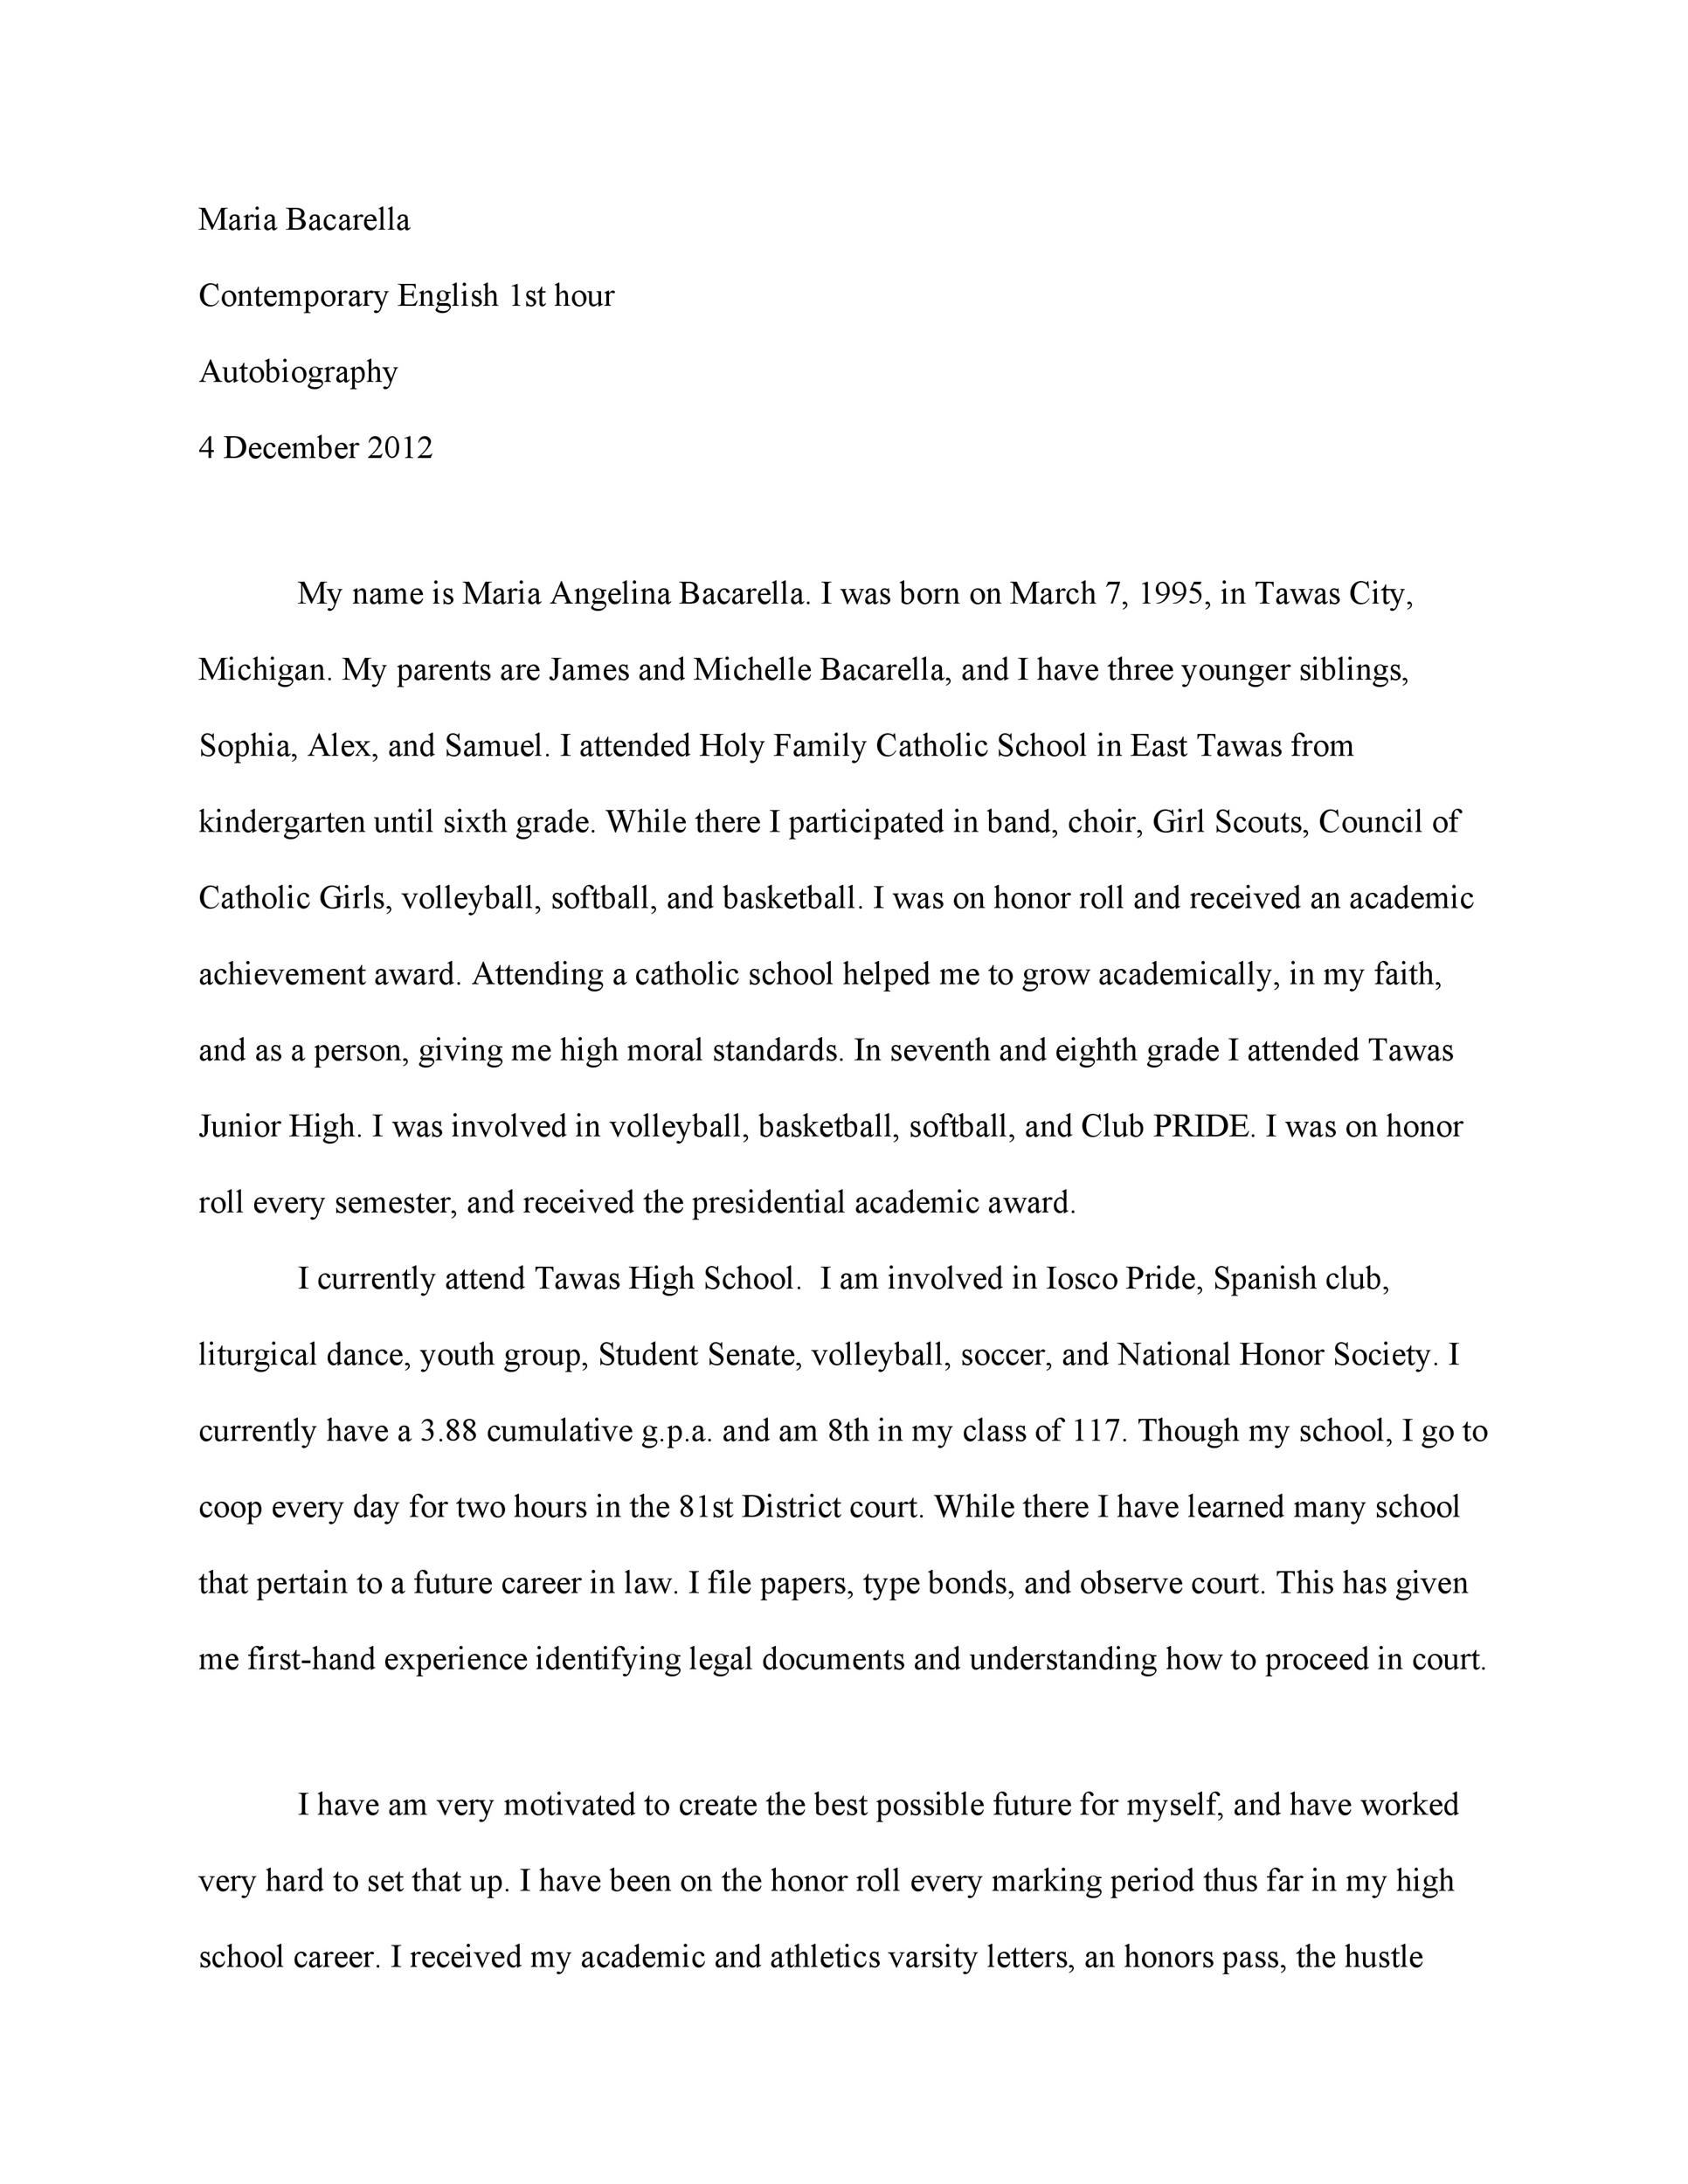 Free Autobiography Template 38